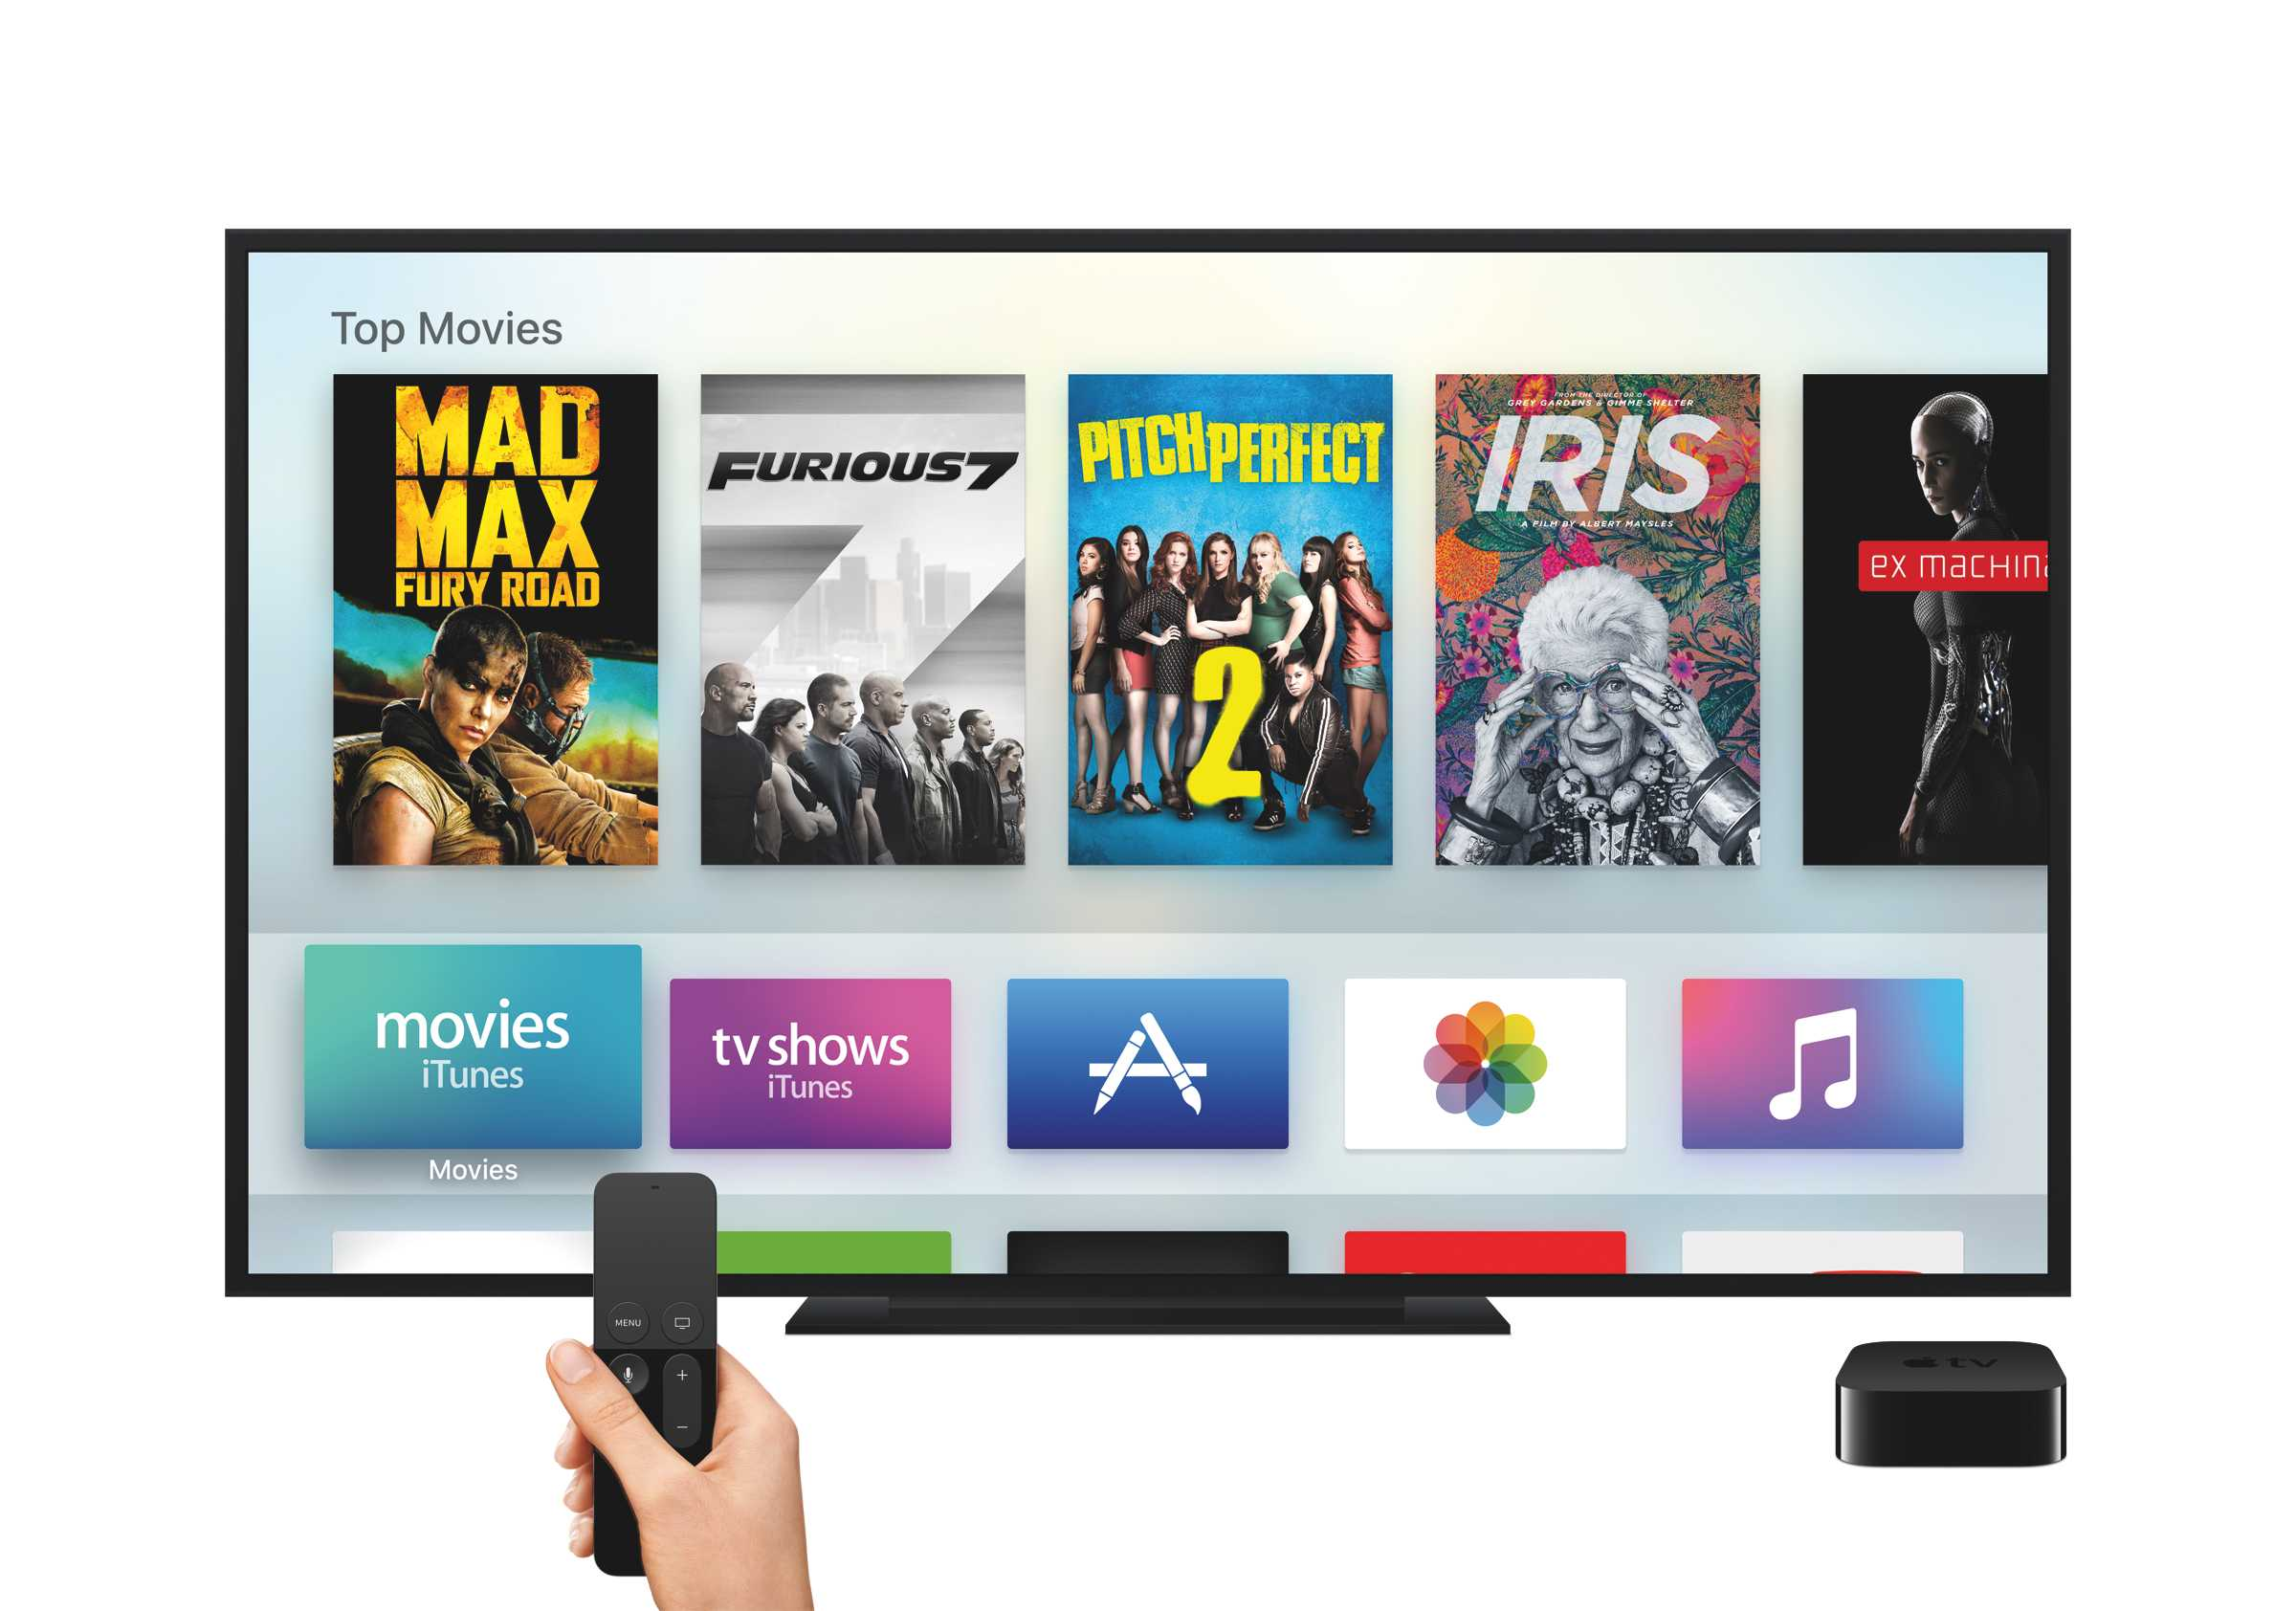 It's About Time! 4K Apple TV Version Finally Confirmed For September